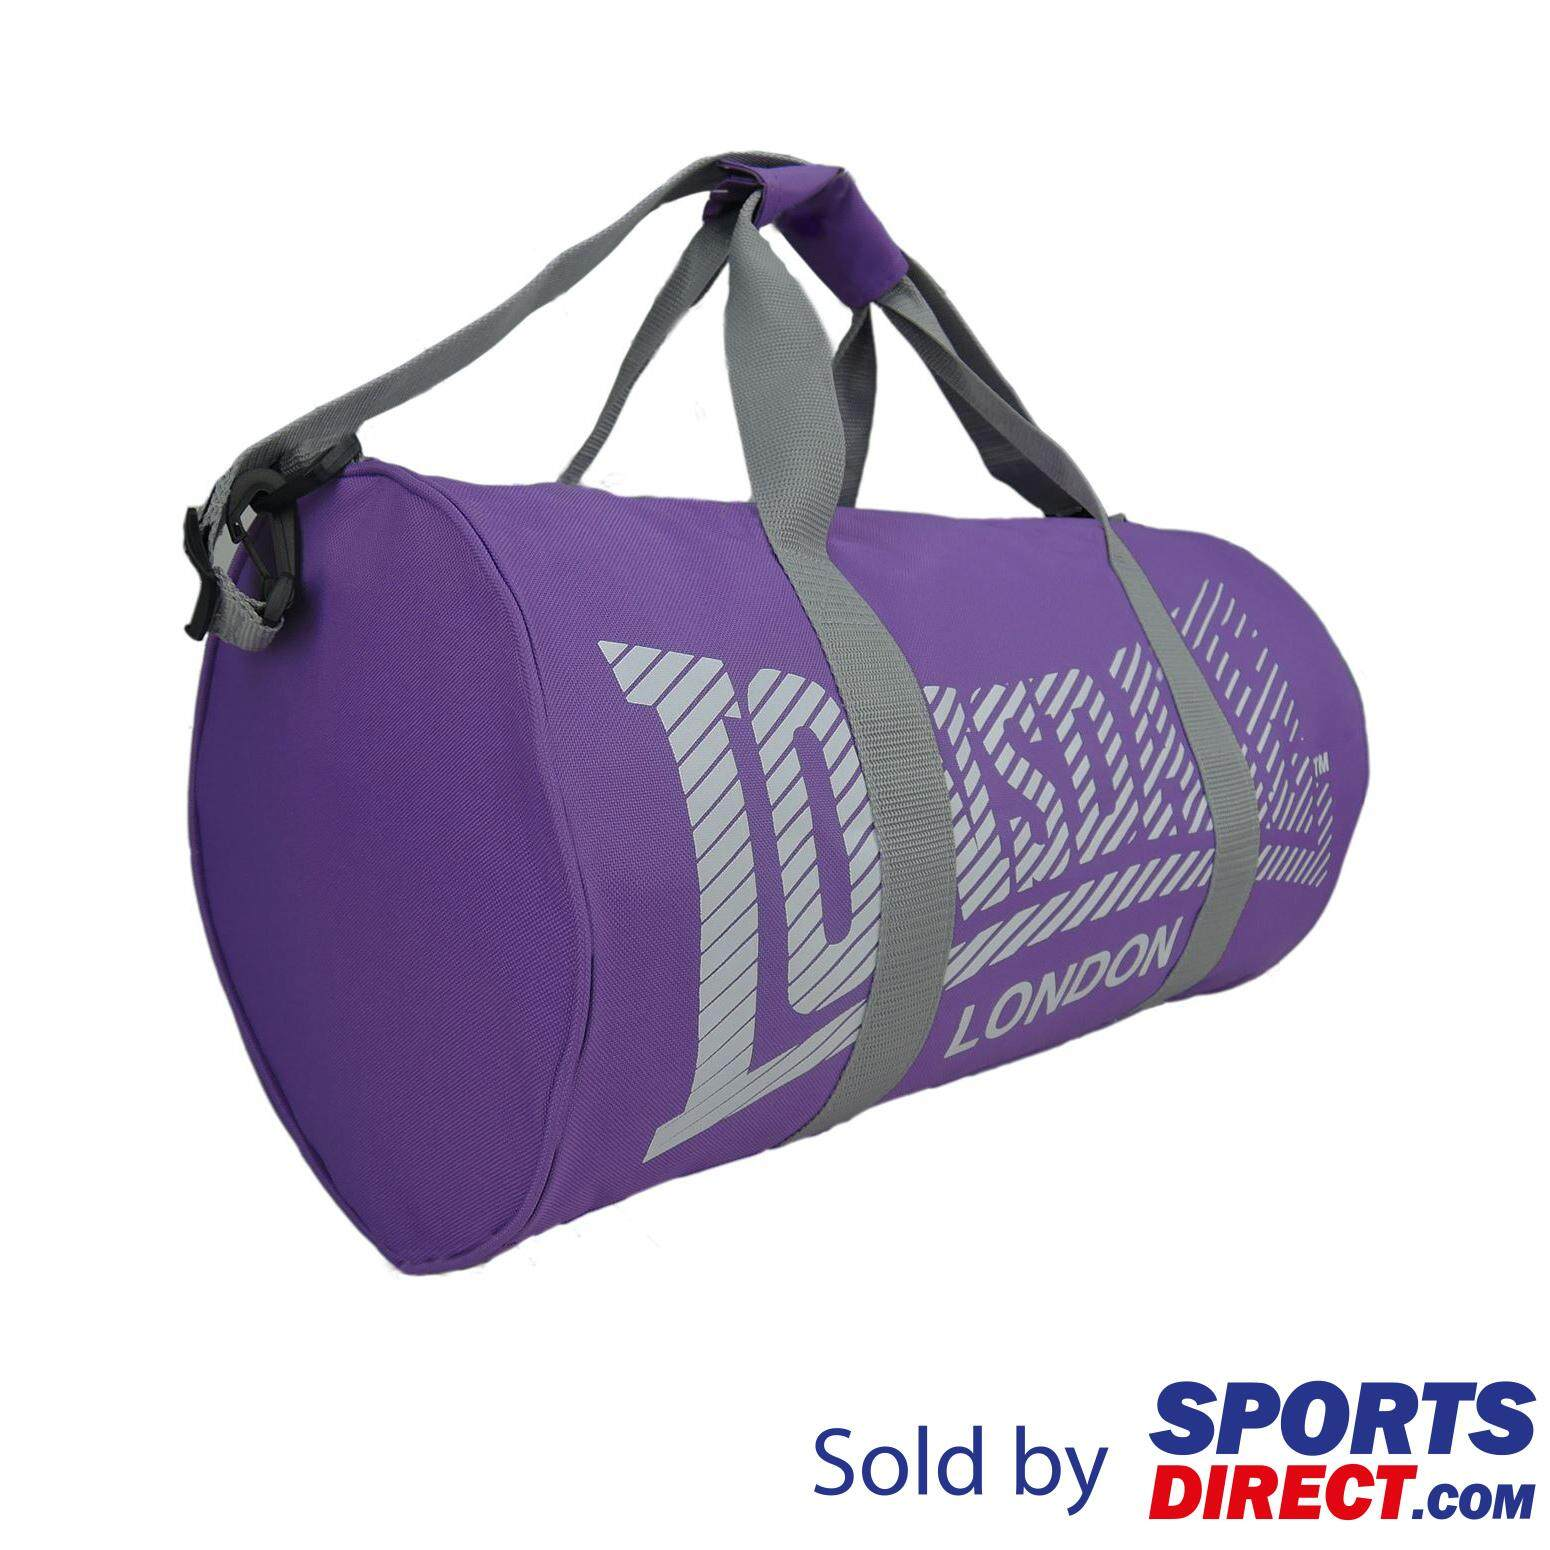 Lonsdale Barrel Bag  Buy sell online Gym Totes with cheap price  d17df991b1878